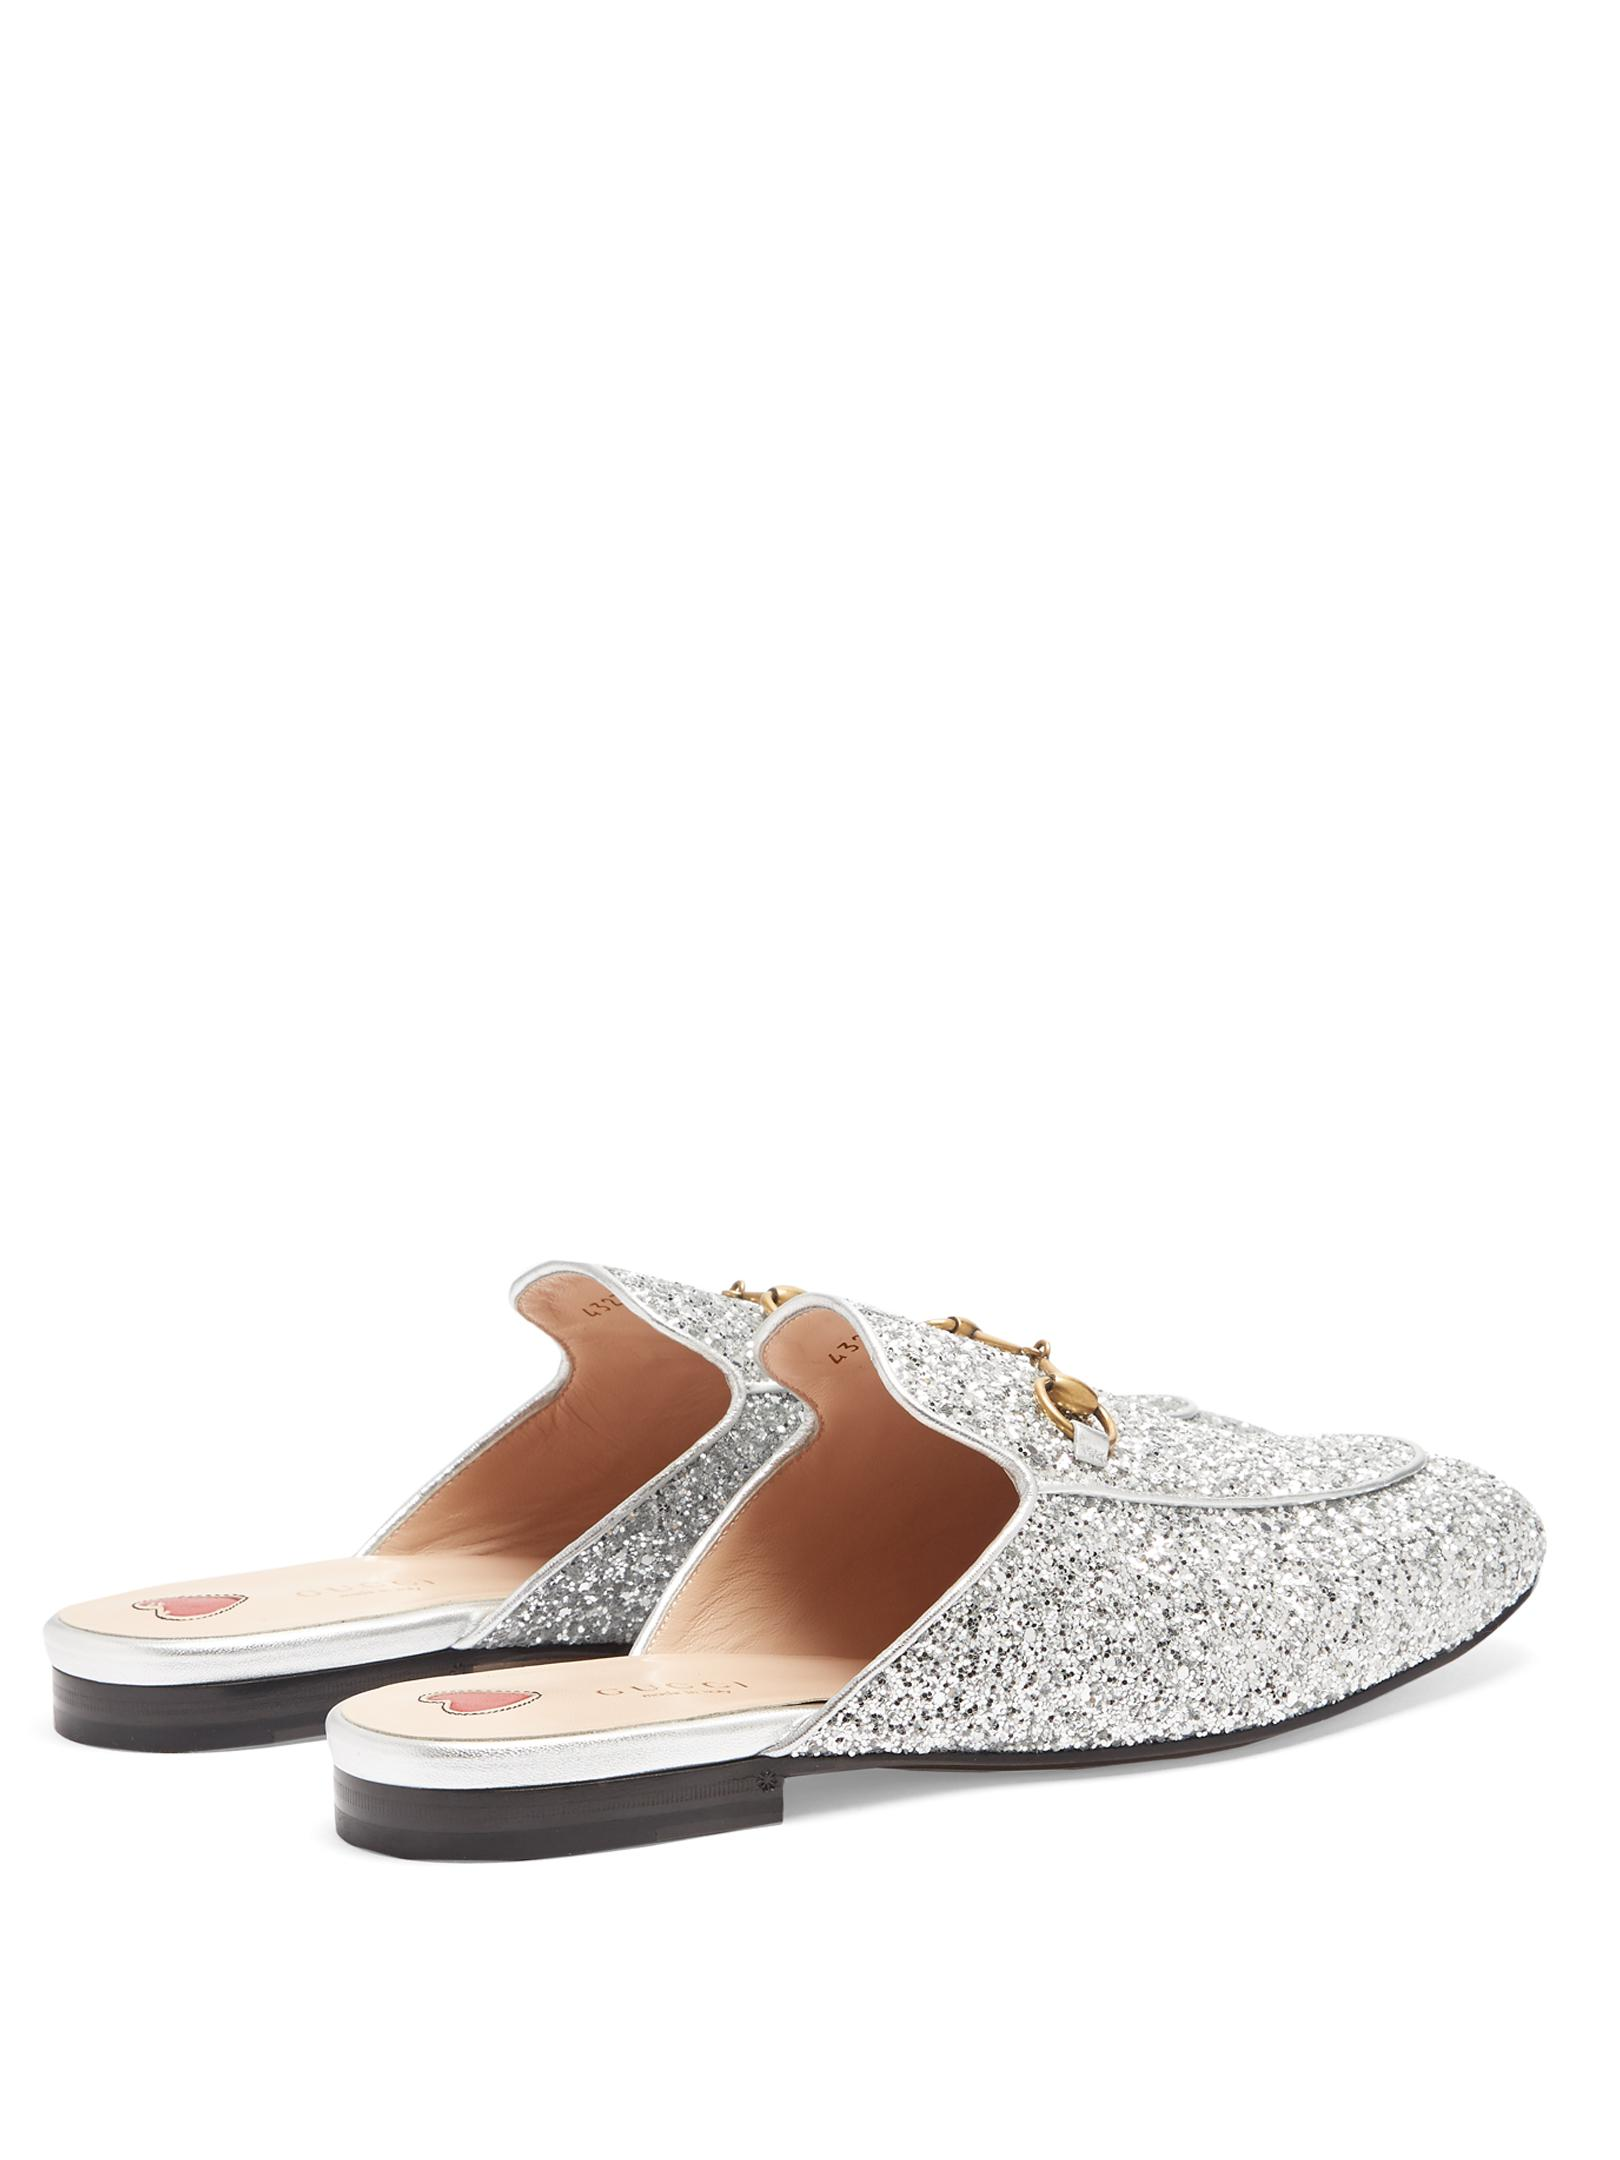 03c03e14e3f Gucci Princetown Glitter Backless Loafers in Metallic - Lyst